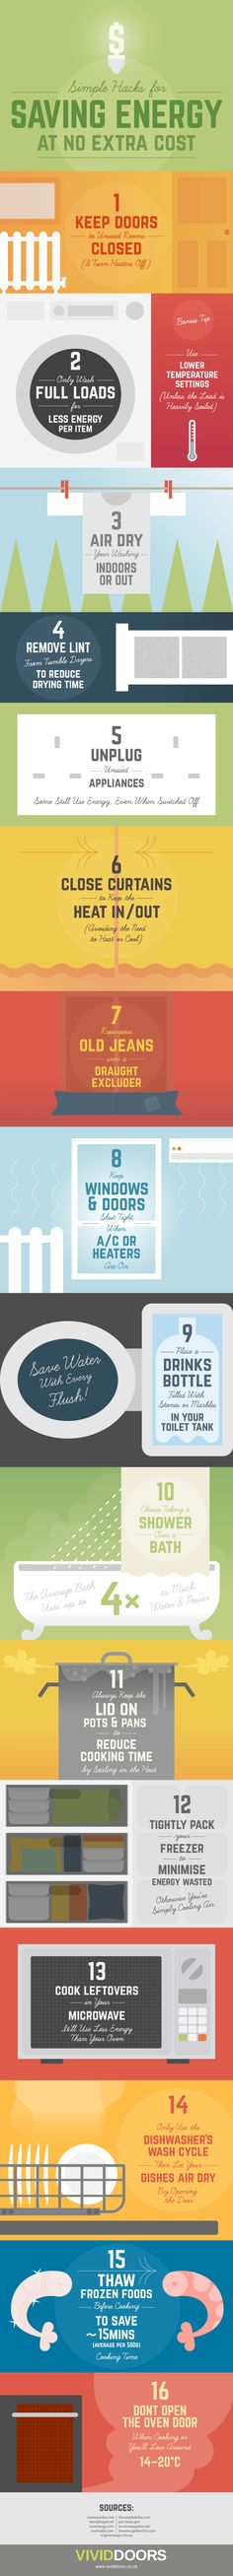 Quick Tips You Can Use to Save Energy (And Money) ♥ Loved and pinned by www.rprheating.com